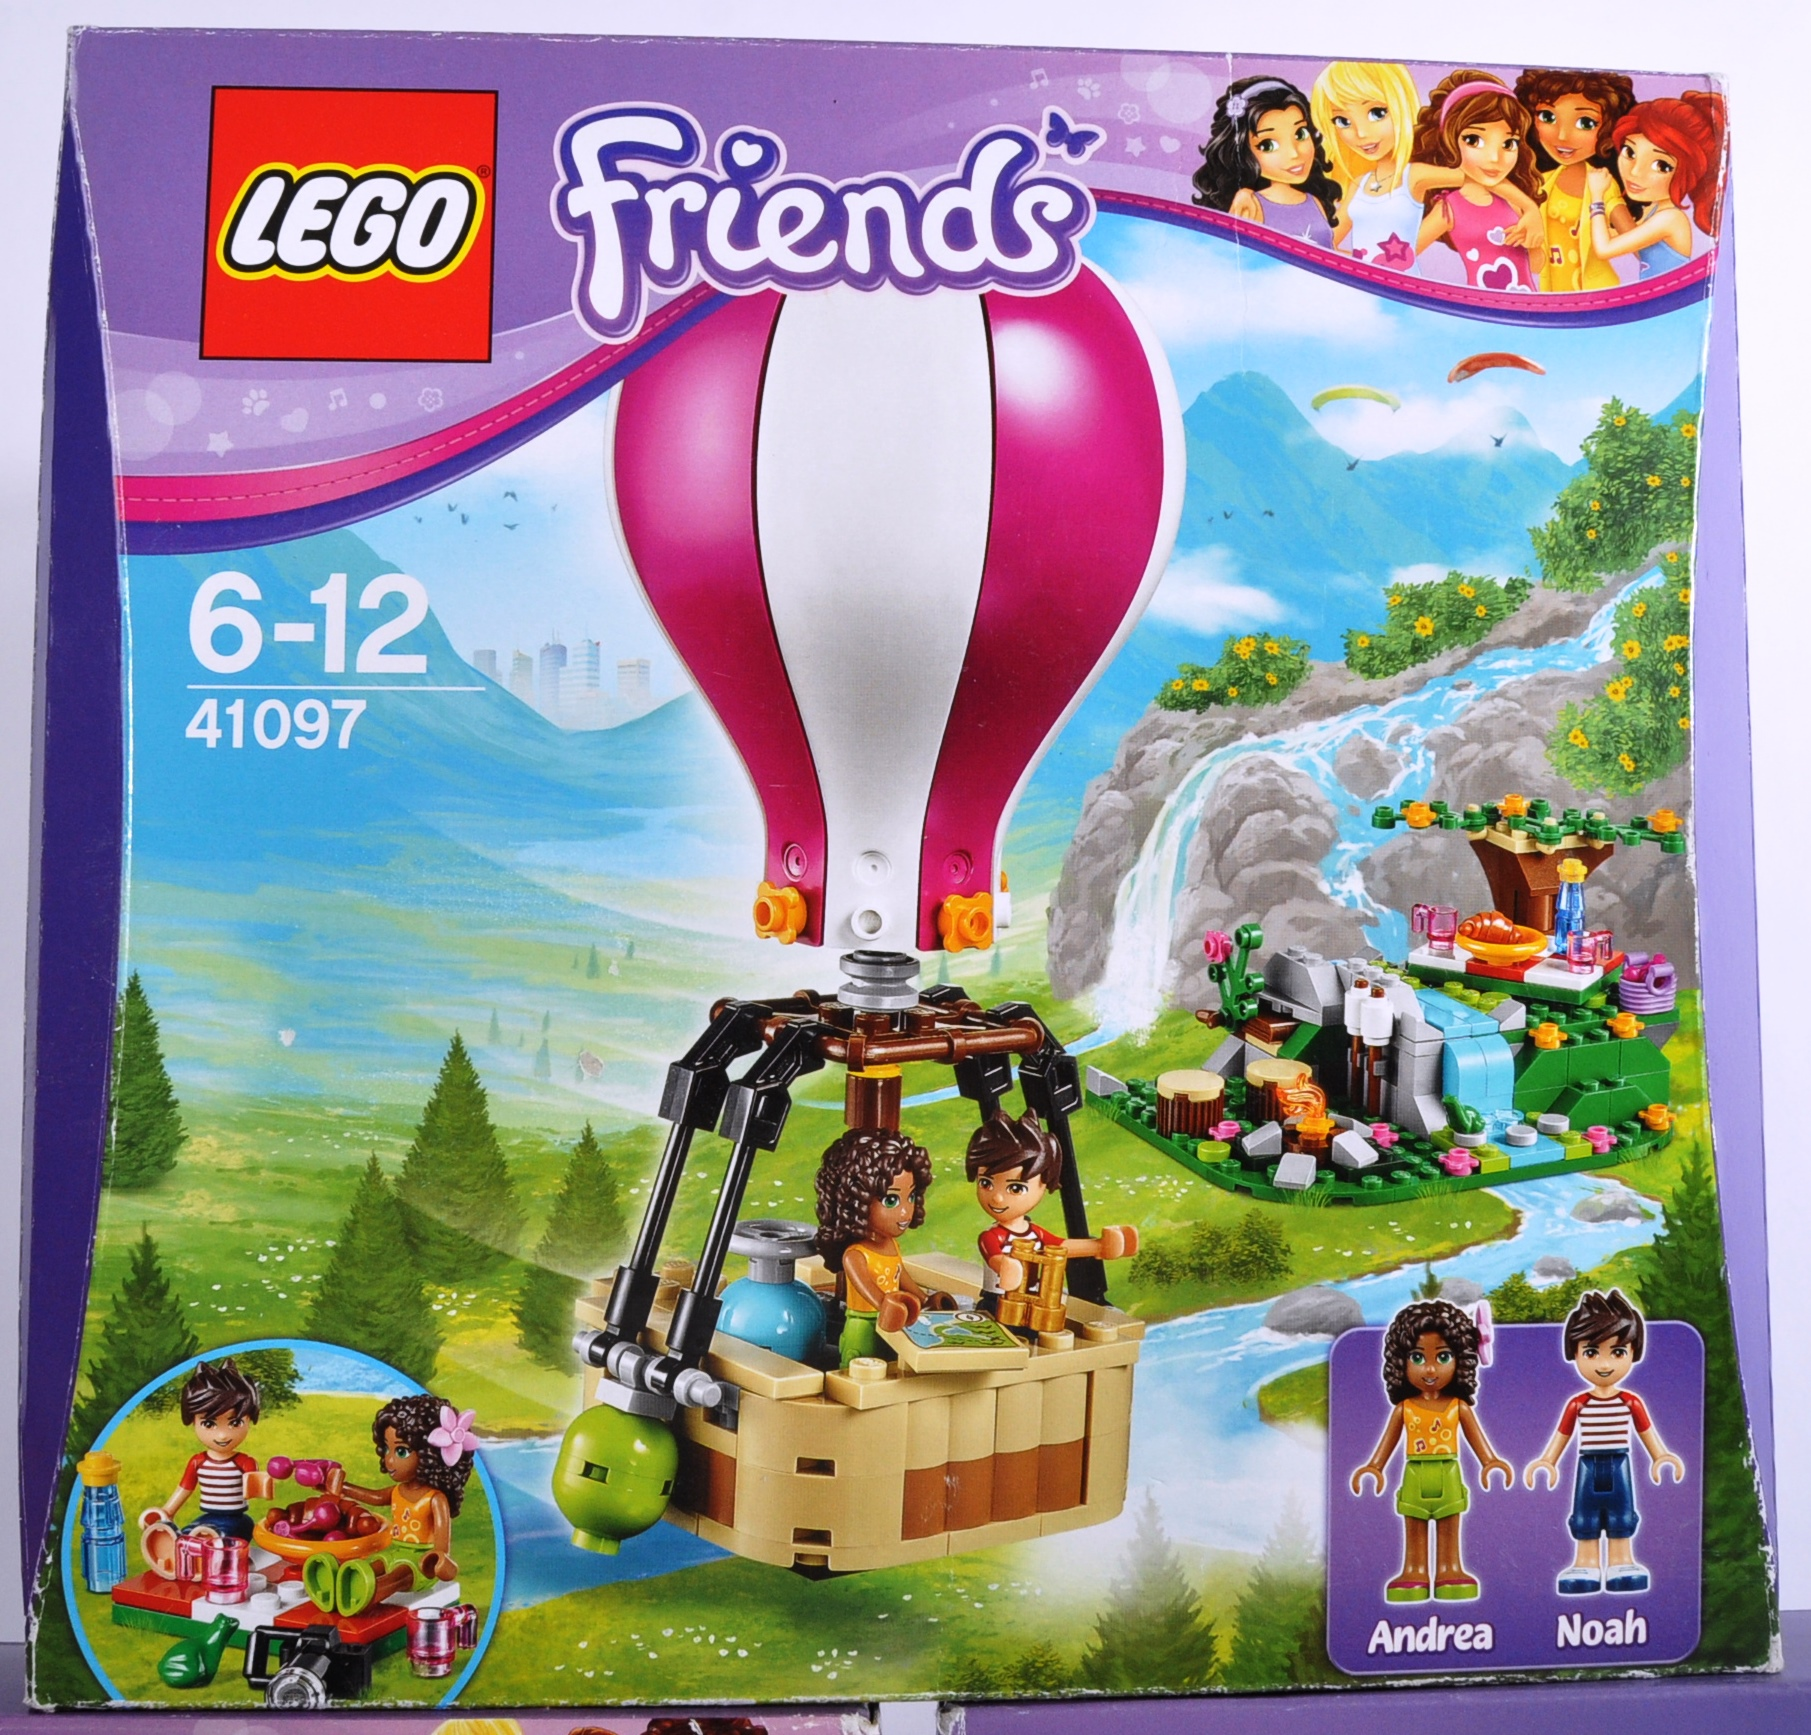 LEGO SETS - LEGO FRIENDS - COLLECTION OF X5 LEGO FRIENDS SETS - Image 2 of 6